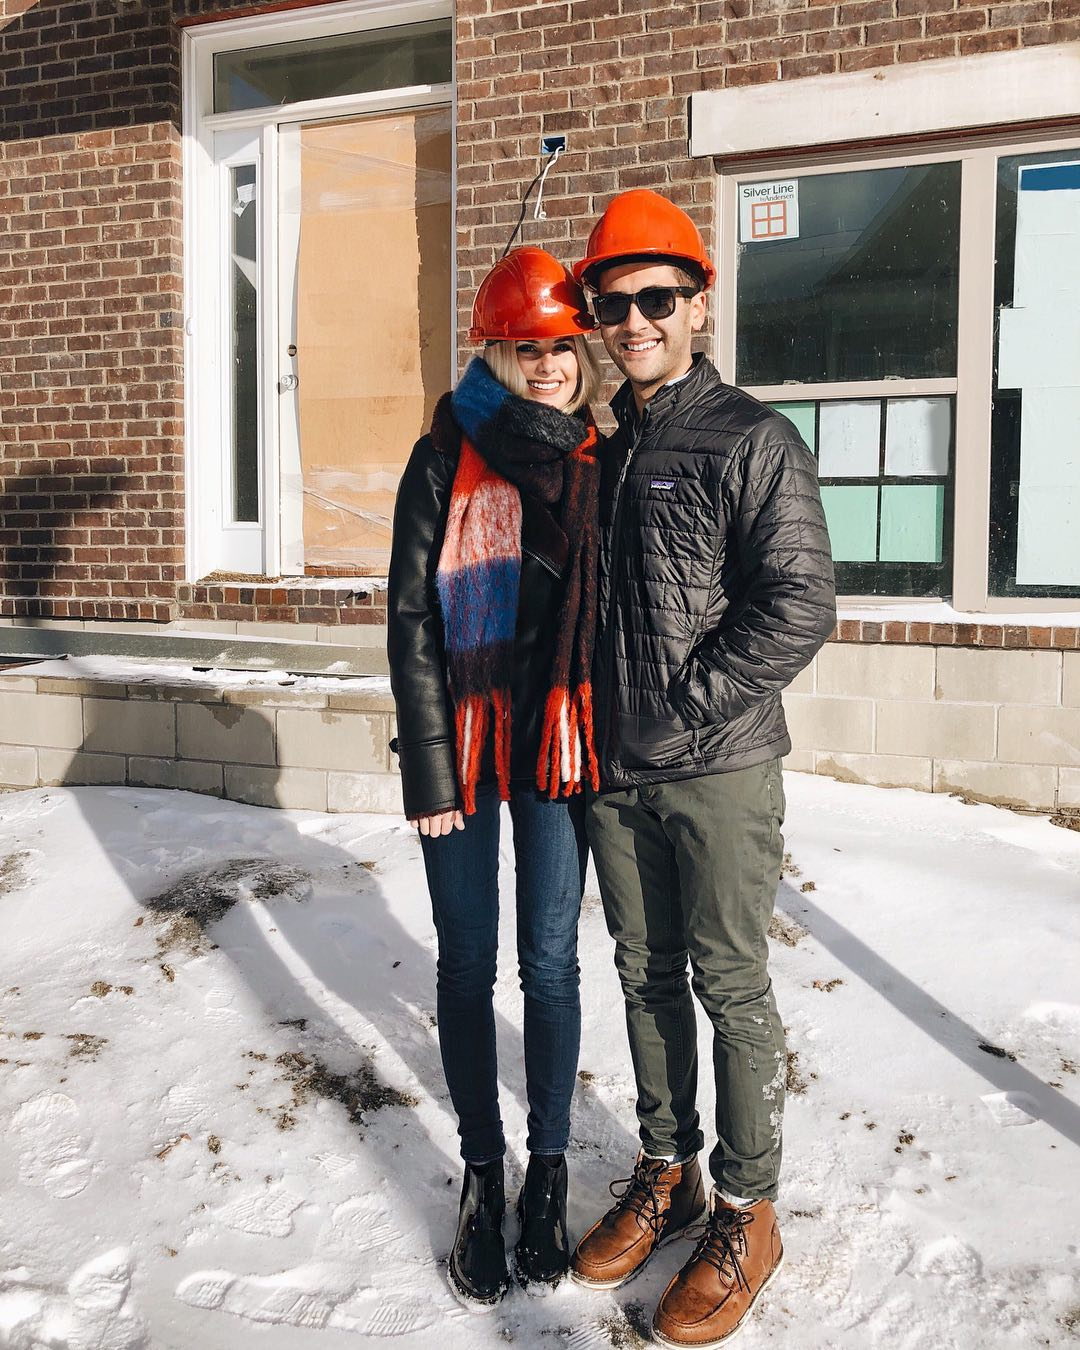 - Anxiously watched our house get built and closed on our house in April 2018. It was the BEST feeling ever and both of our favorite parts of the year!